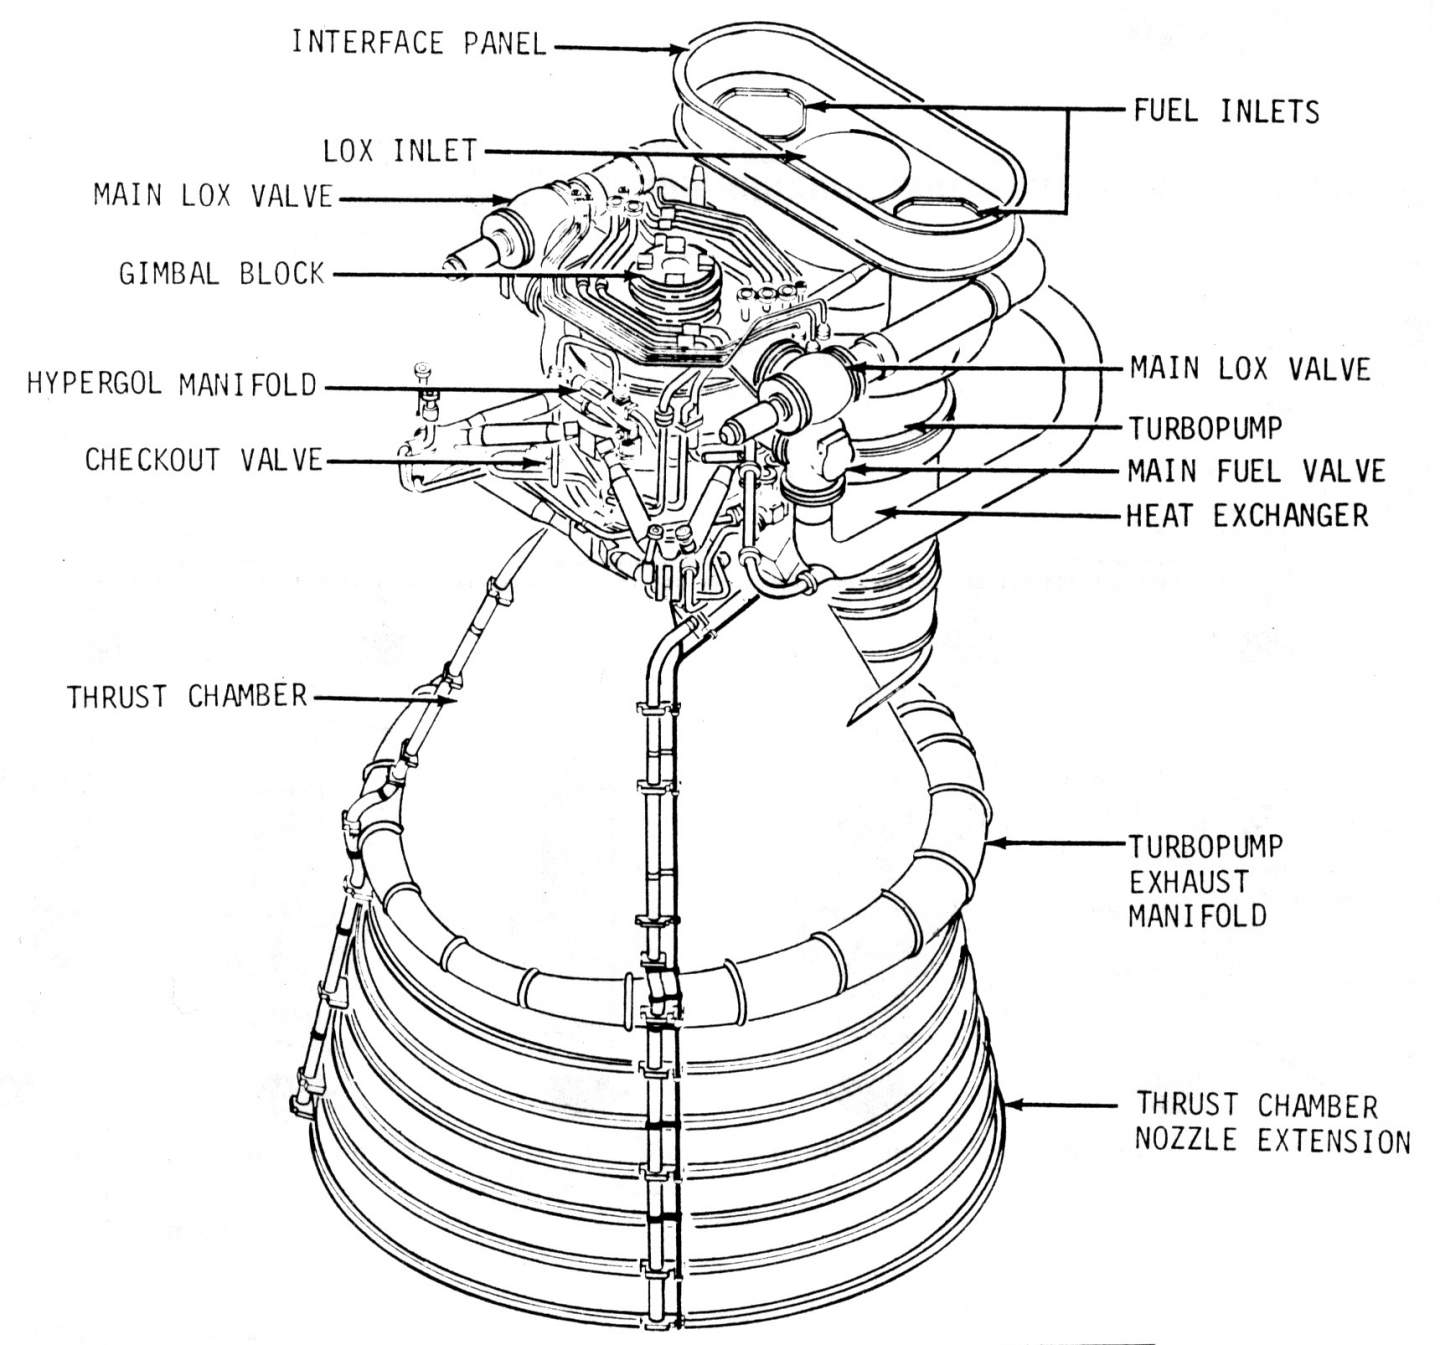 Saturn V engine diagram.jpg